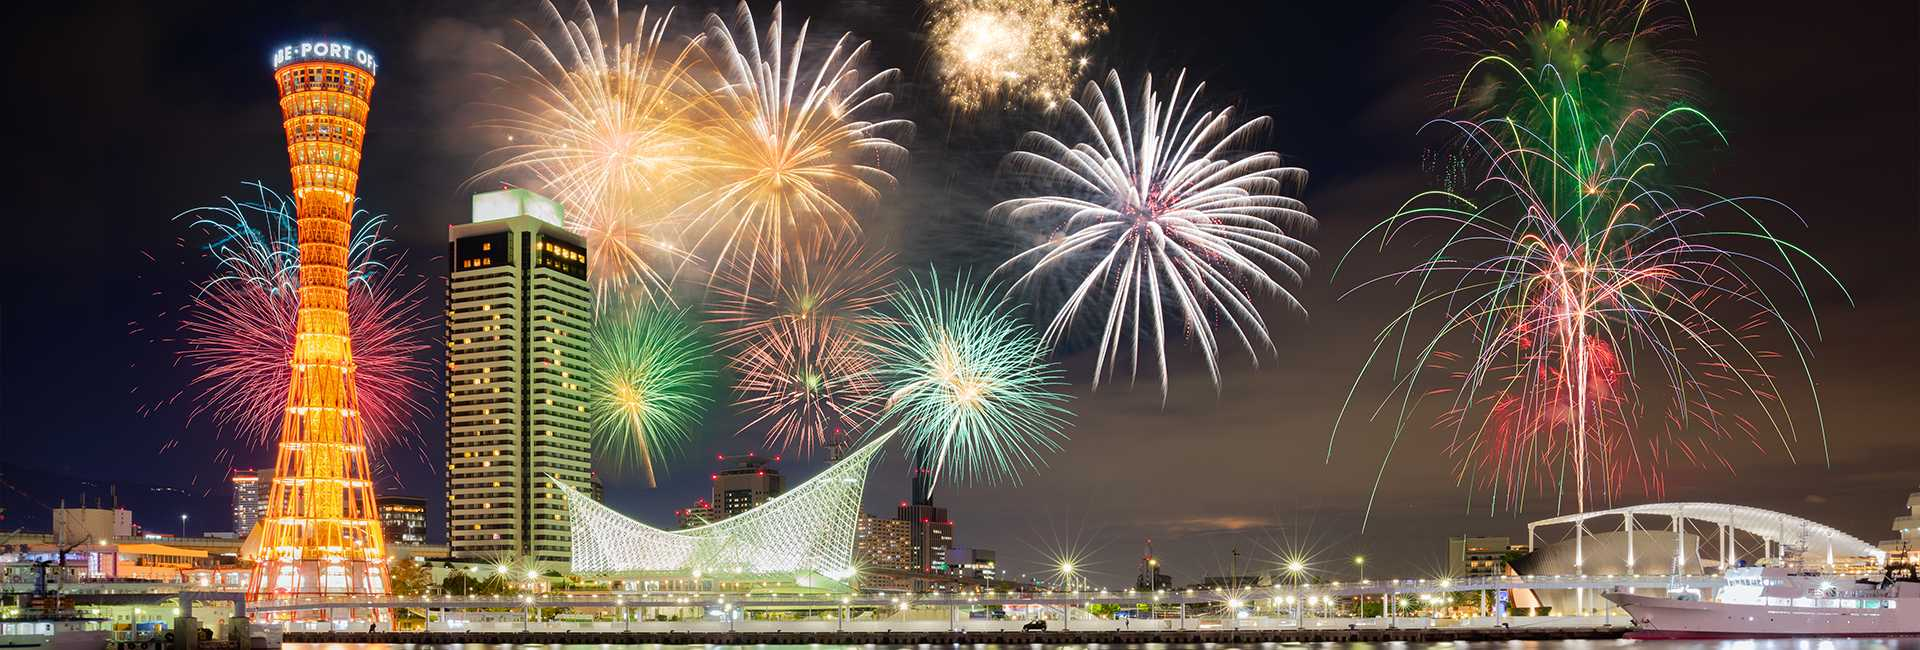 fireworks at the port of Kobe